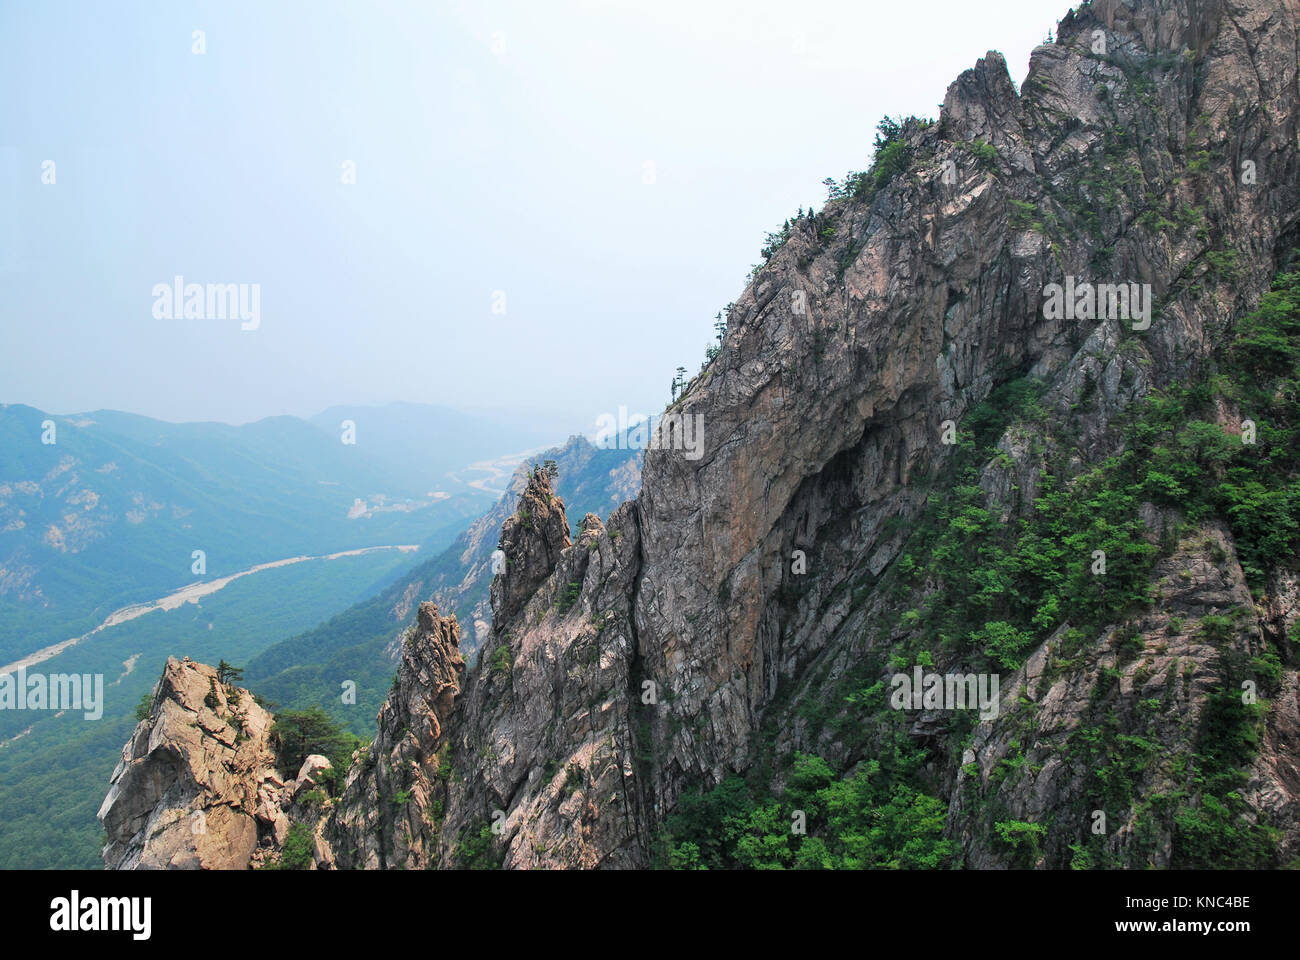 Treacherous mountain cliffs with pointed and jagged edges. Symbolizes abstract concepts such as danger, travel and - Stock Image